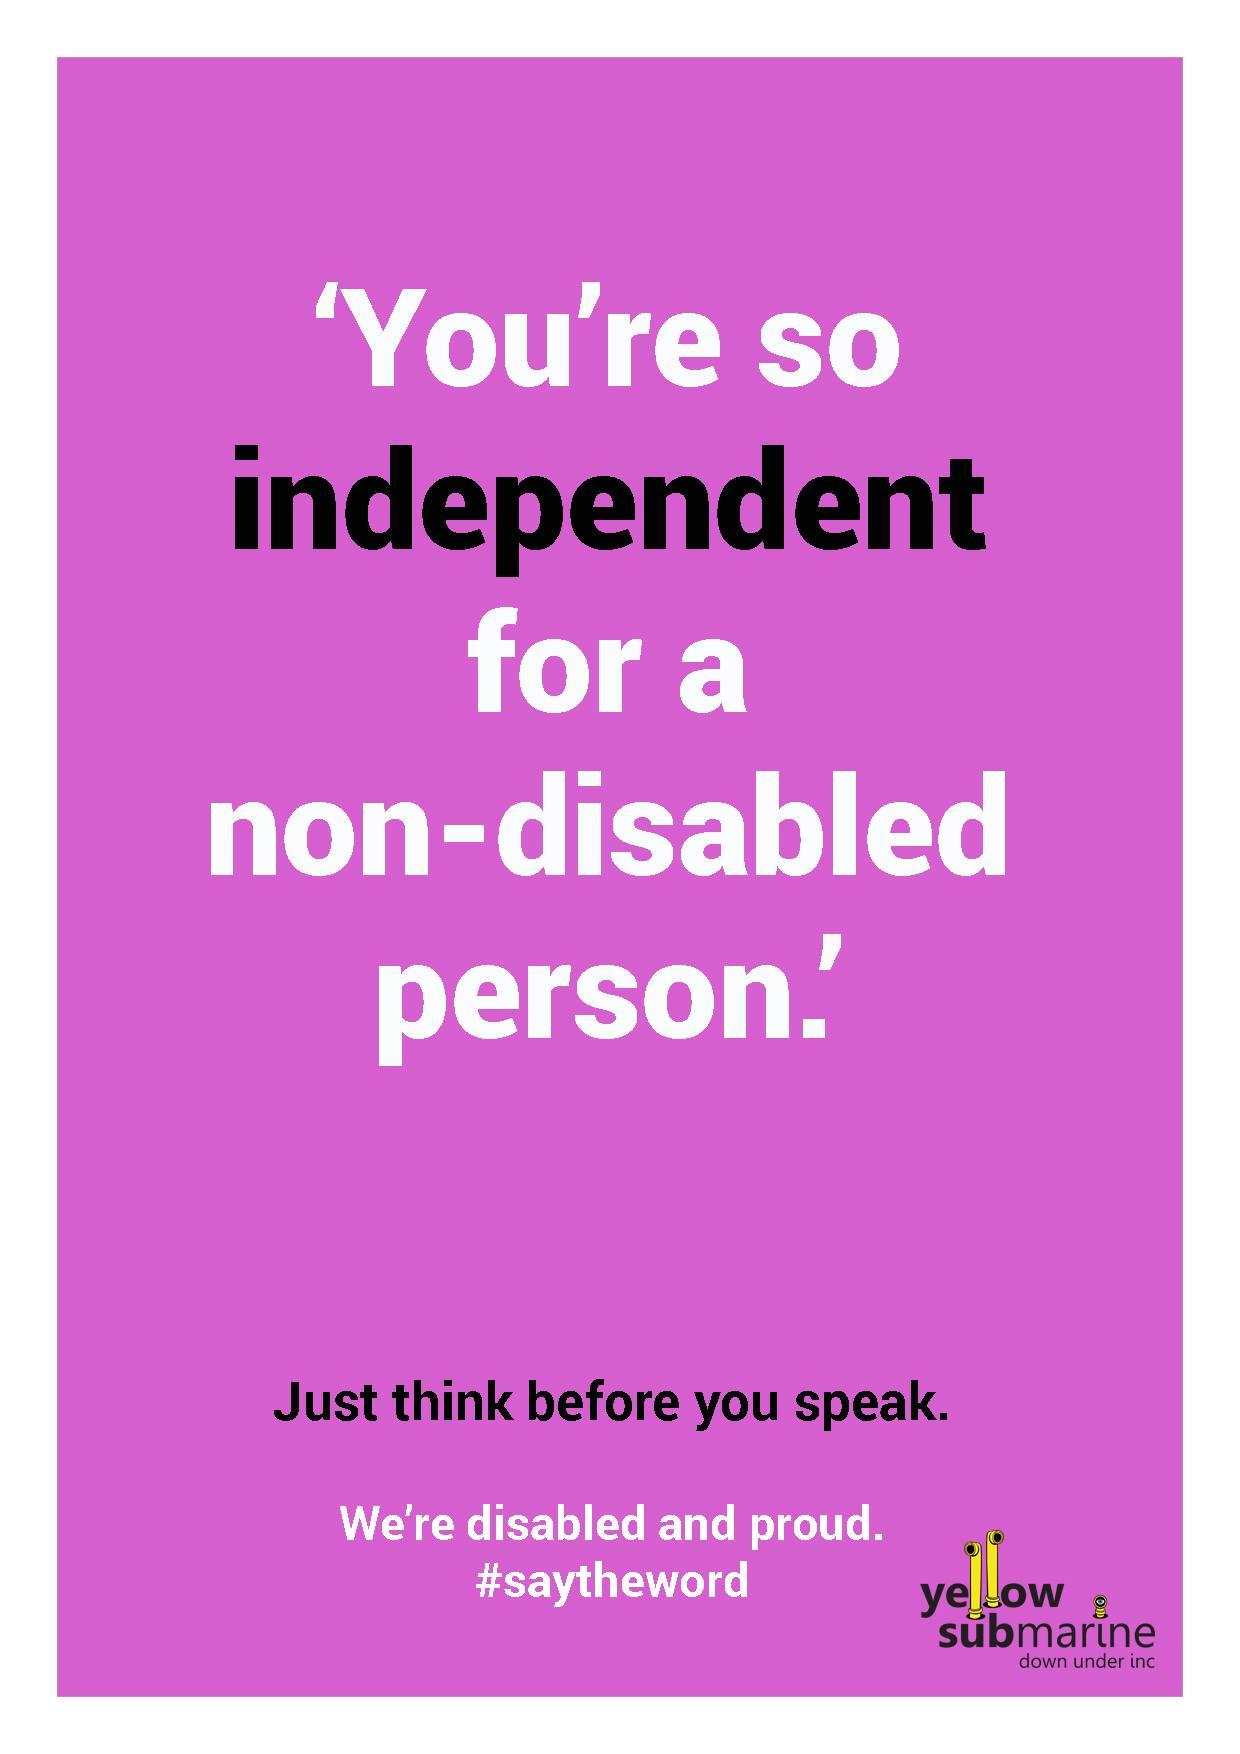 A poster with the words 'You're so independent for a non-disabled person' on a pink background